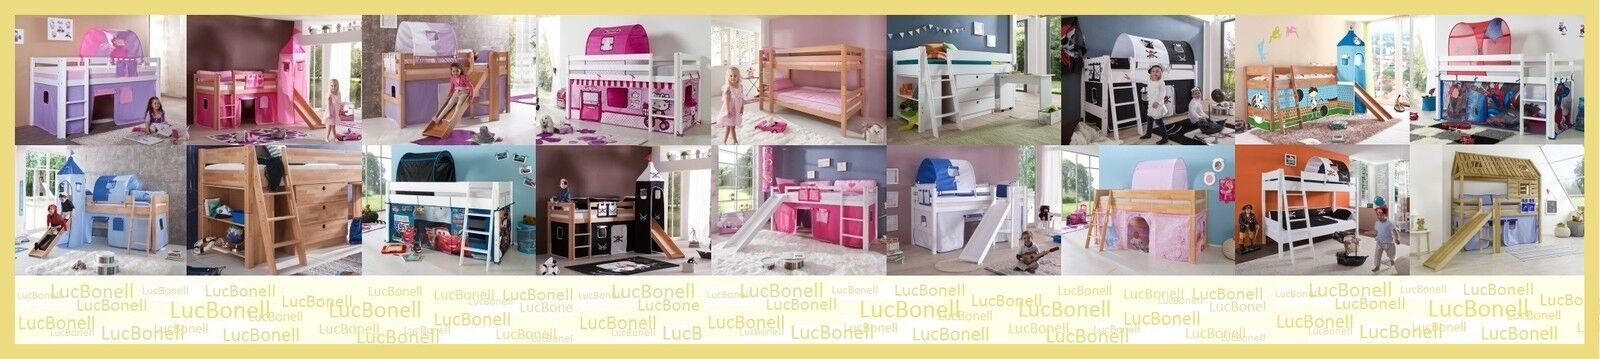 LucBonell Ambiente